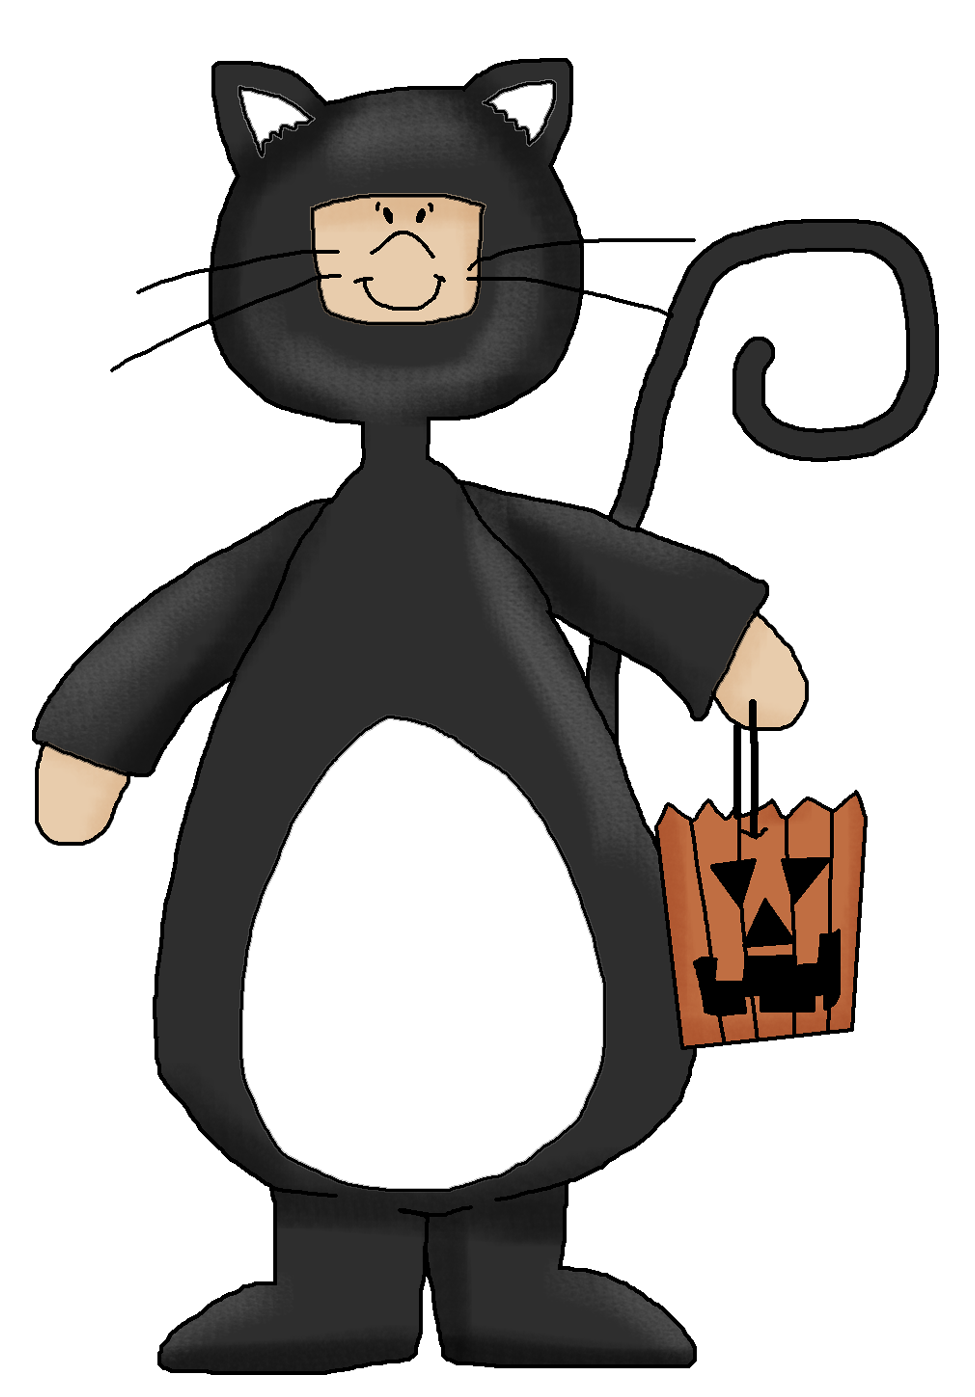 Pete the cat boogie cat clipart png black and white library Teacher Bits and Bobs: Costume Party Math Center!! Cutey Cuteness... png black and white library